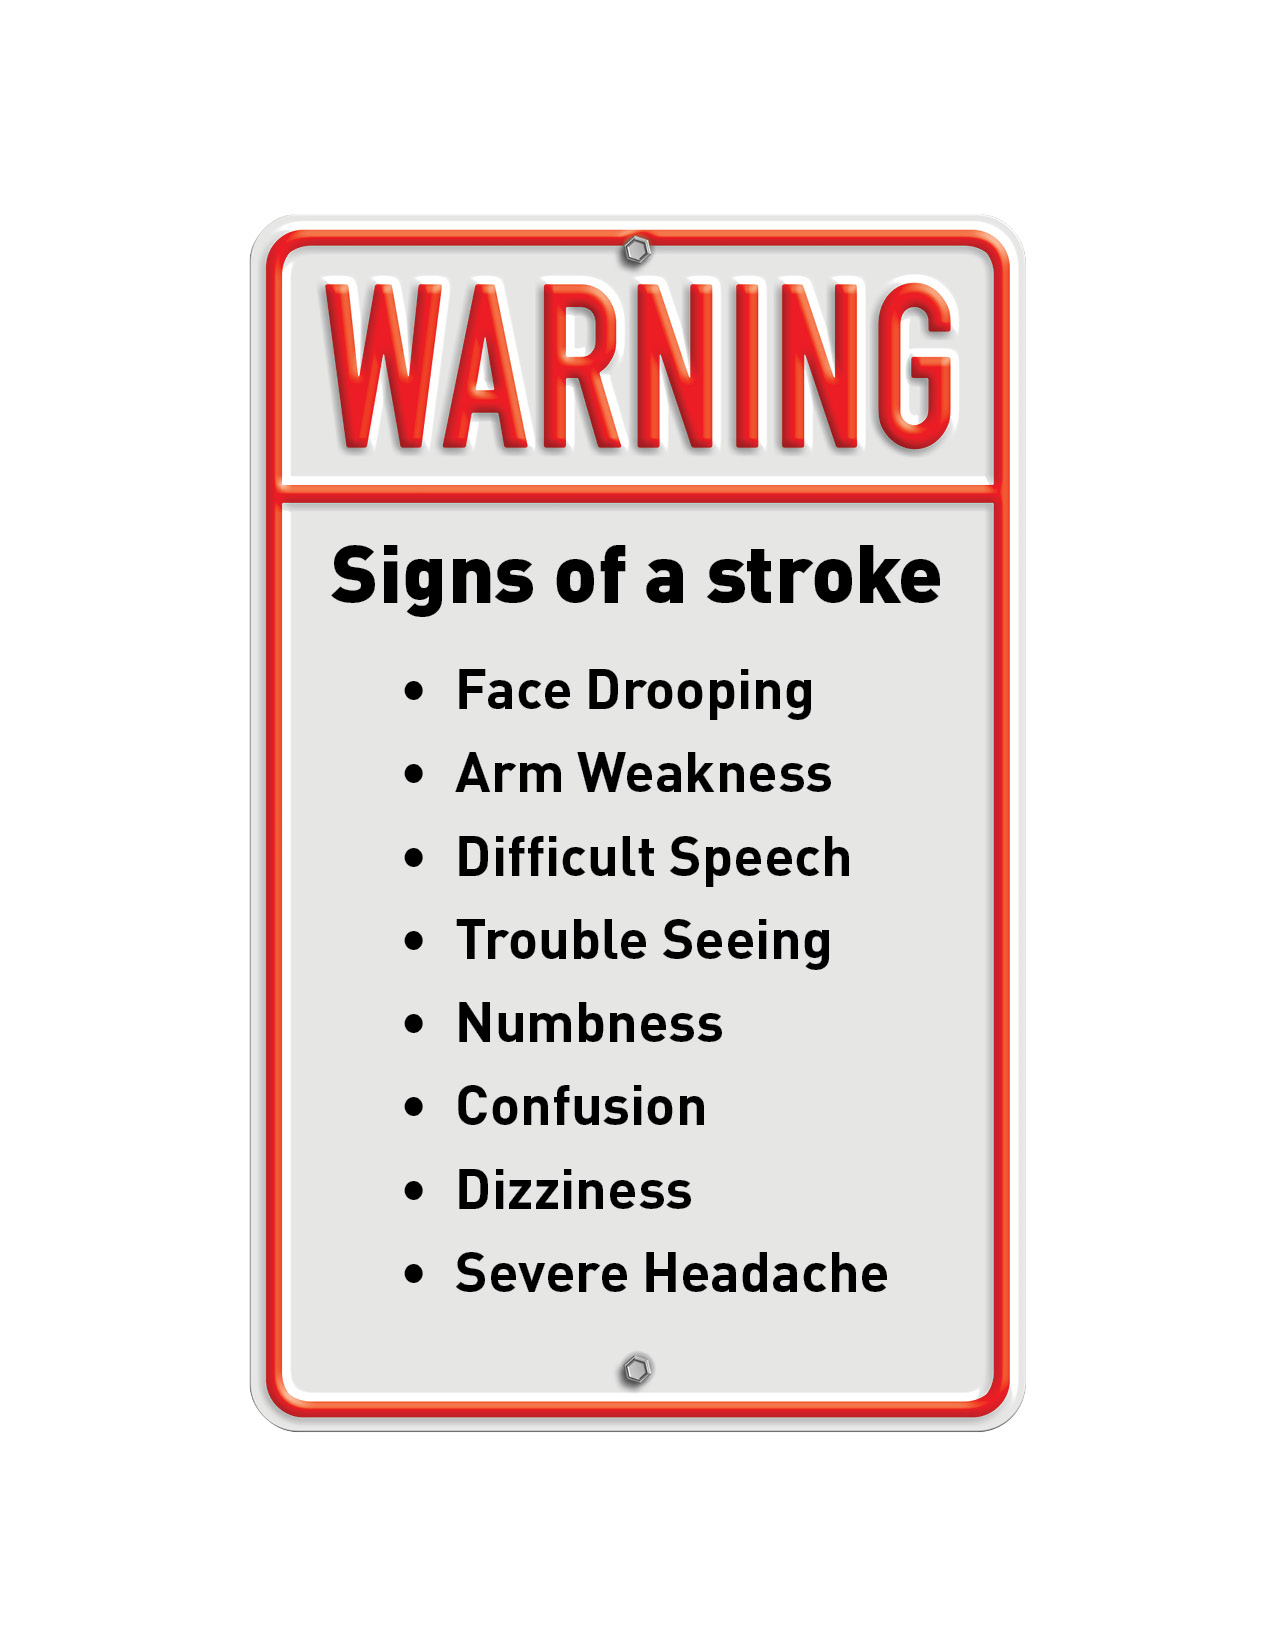 Stroke Warning signs: Slurred speech, confusion or difficulty comprehending speech, severe headache, blurred or dimmed vision in one or both eyes